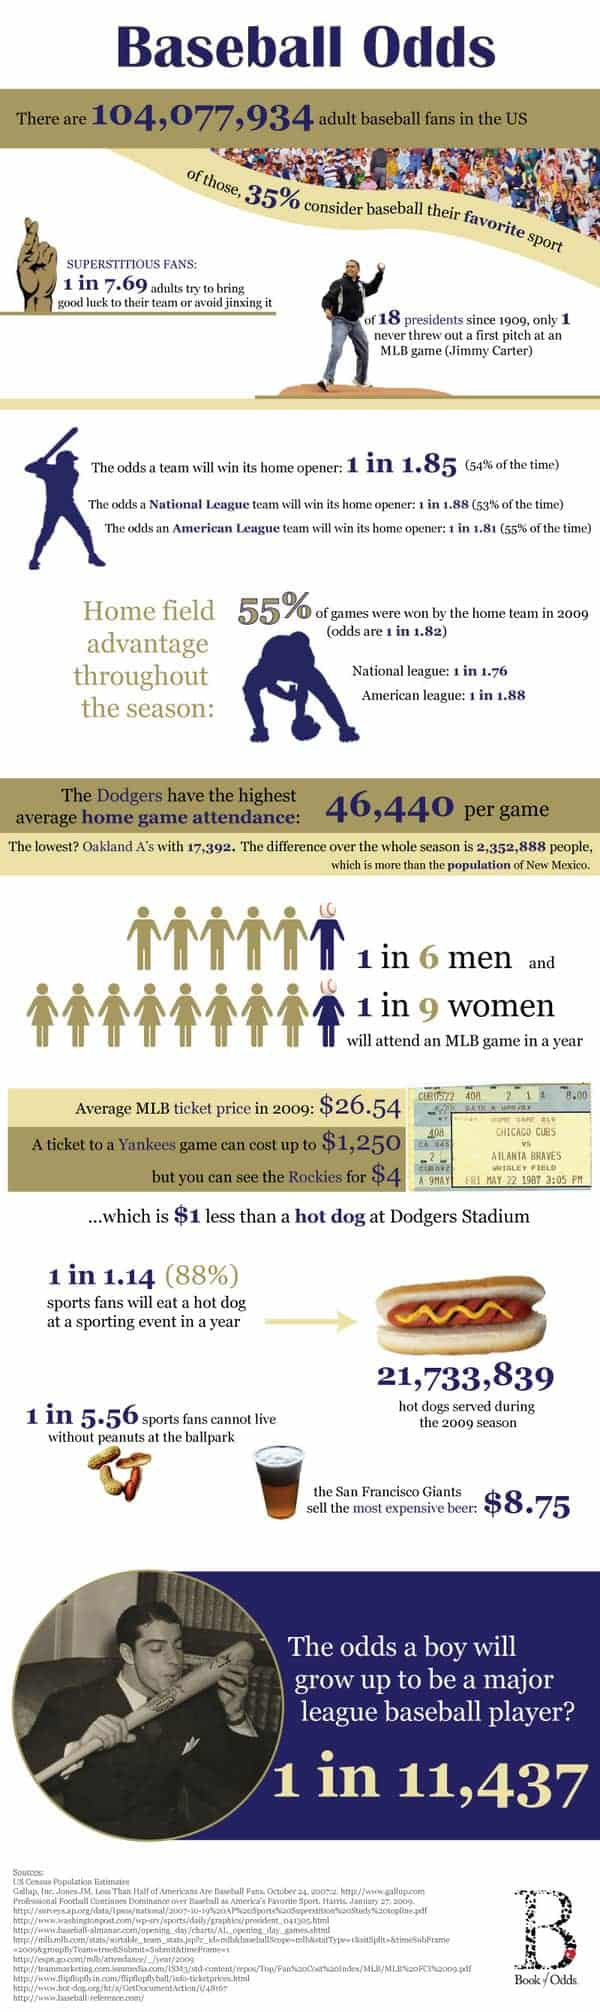 Baseball-2010-Infographic_large